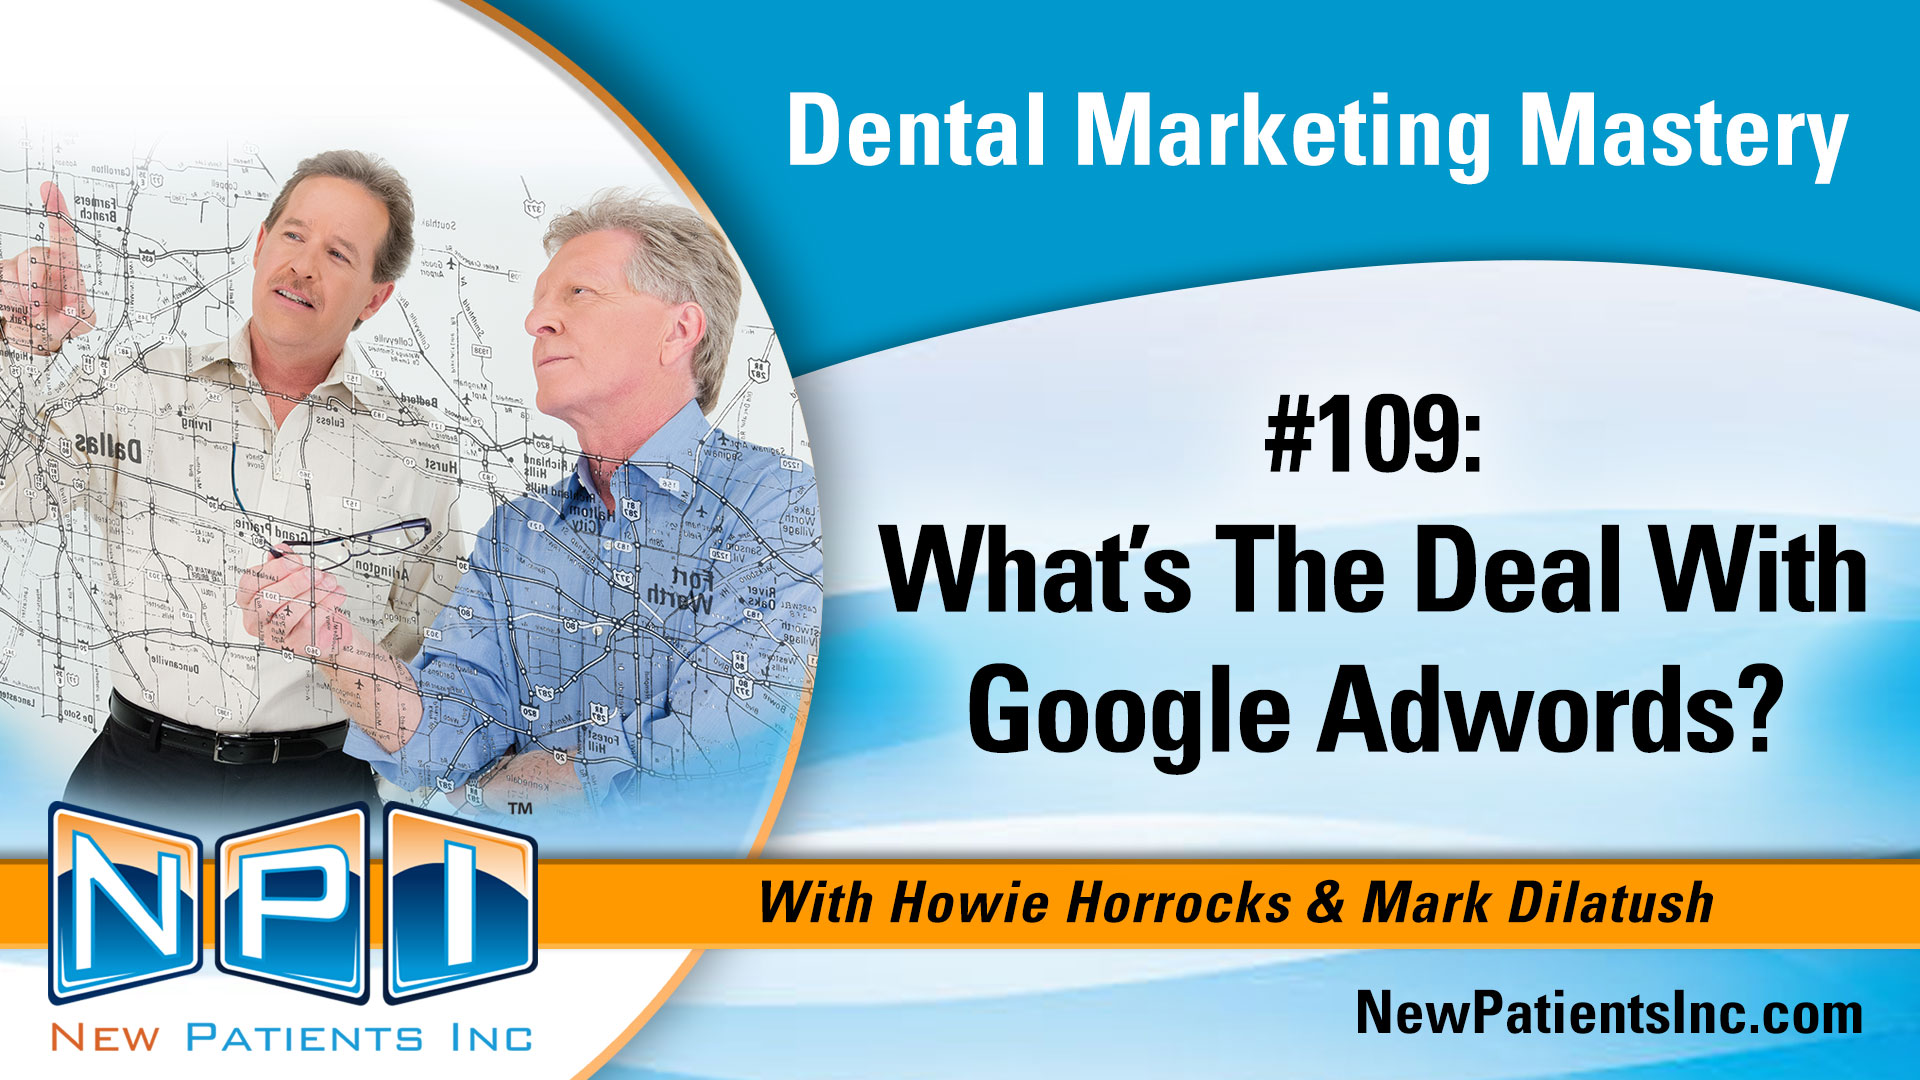 What's the Deal With Google Adwords for Dentists?